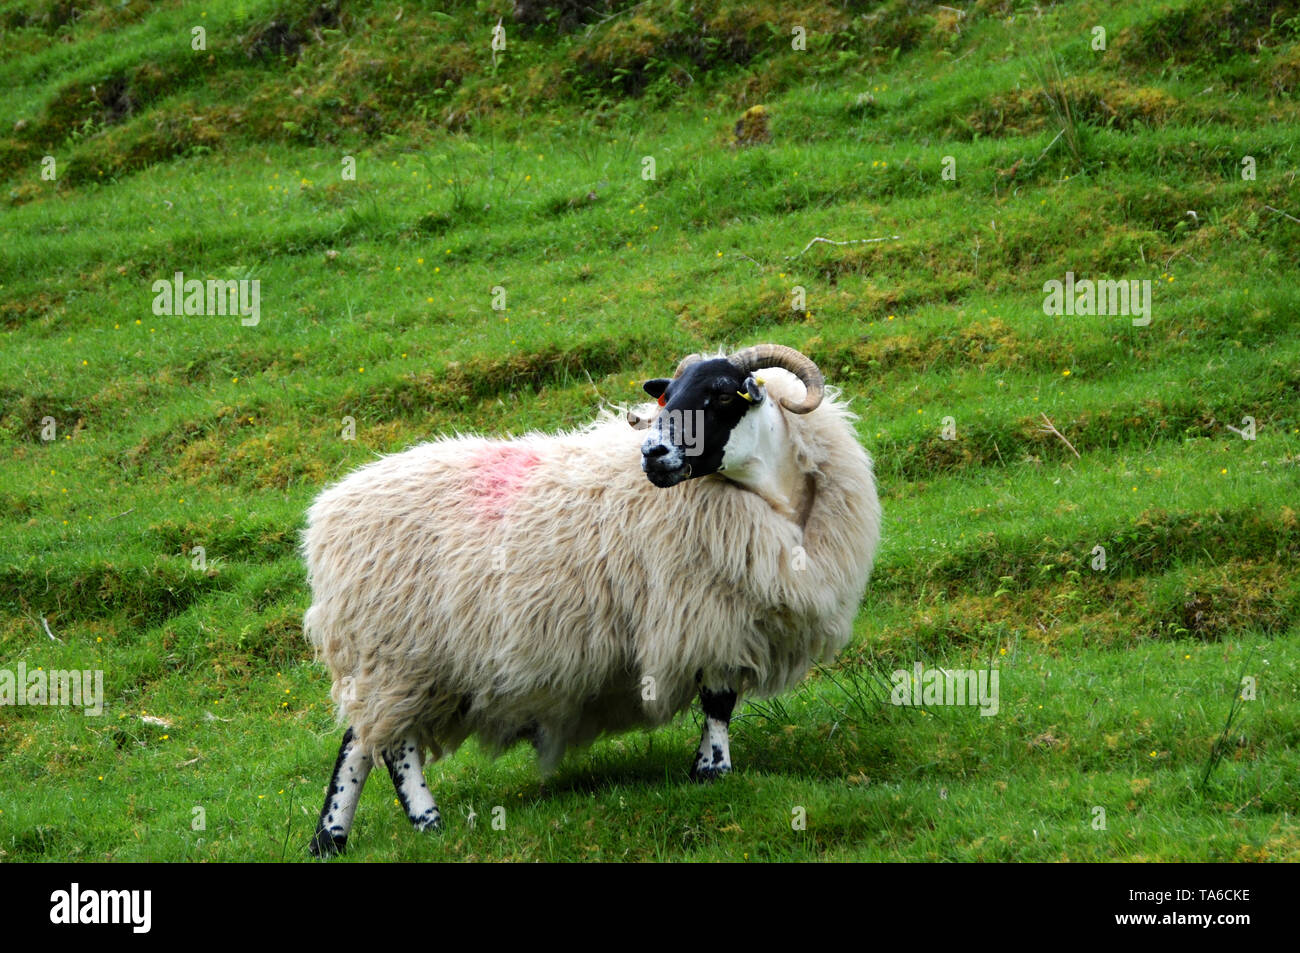 View of a typical scottish sheep in the middle of a green field on the Isle of Skye - Stock Image